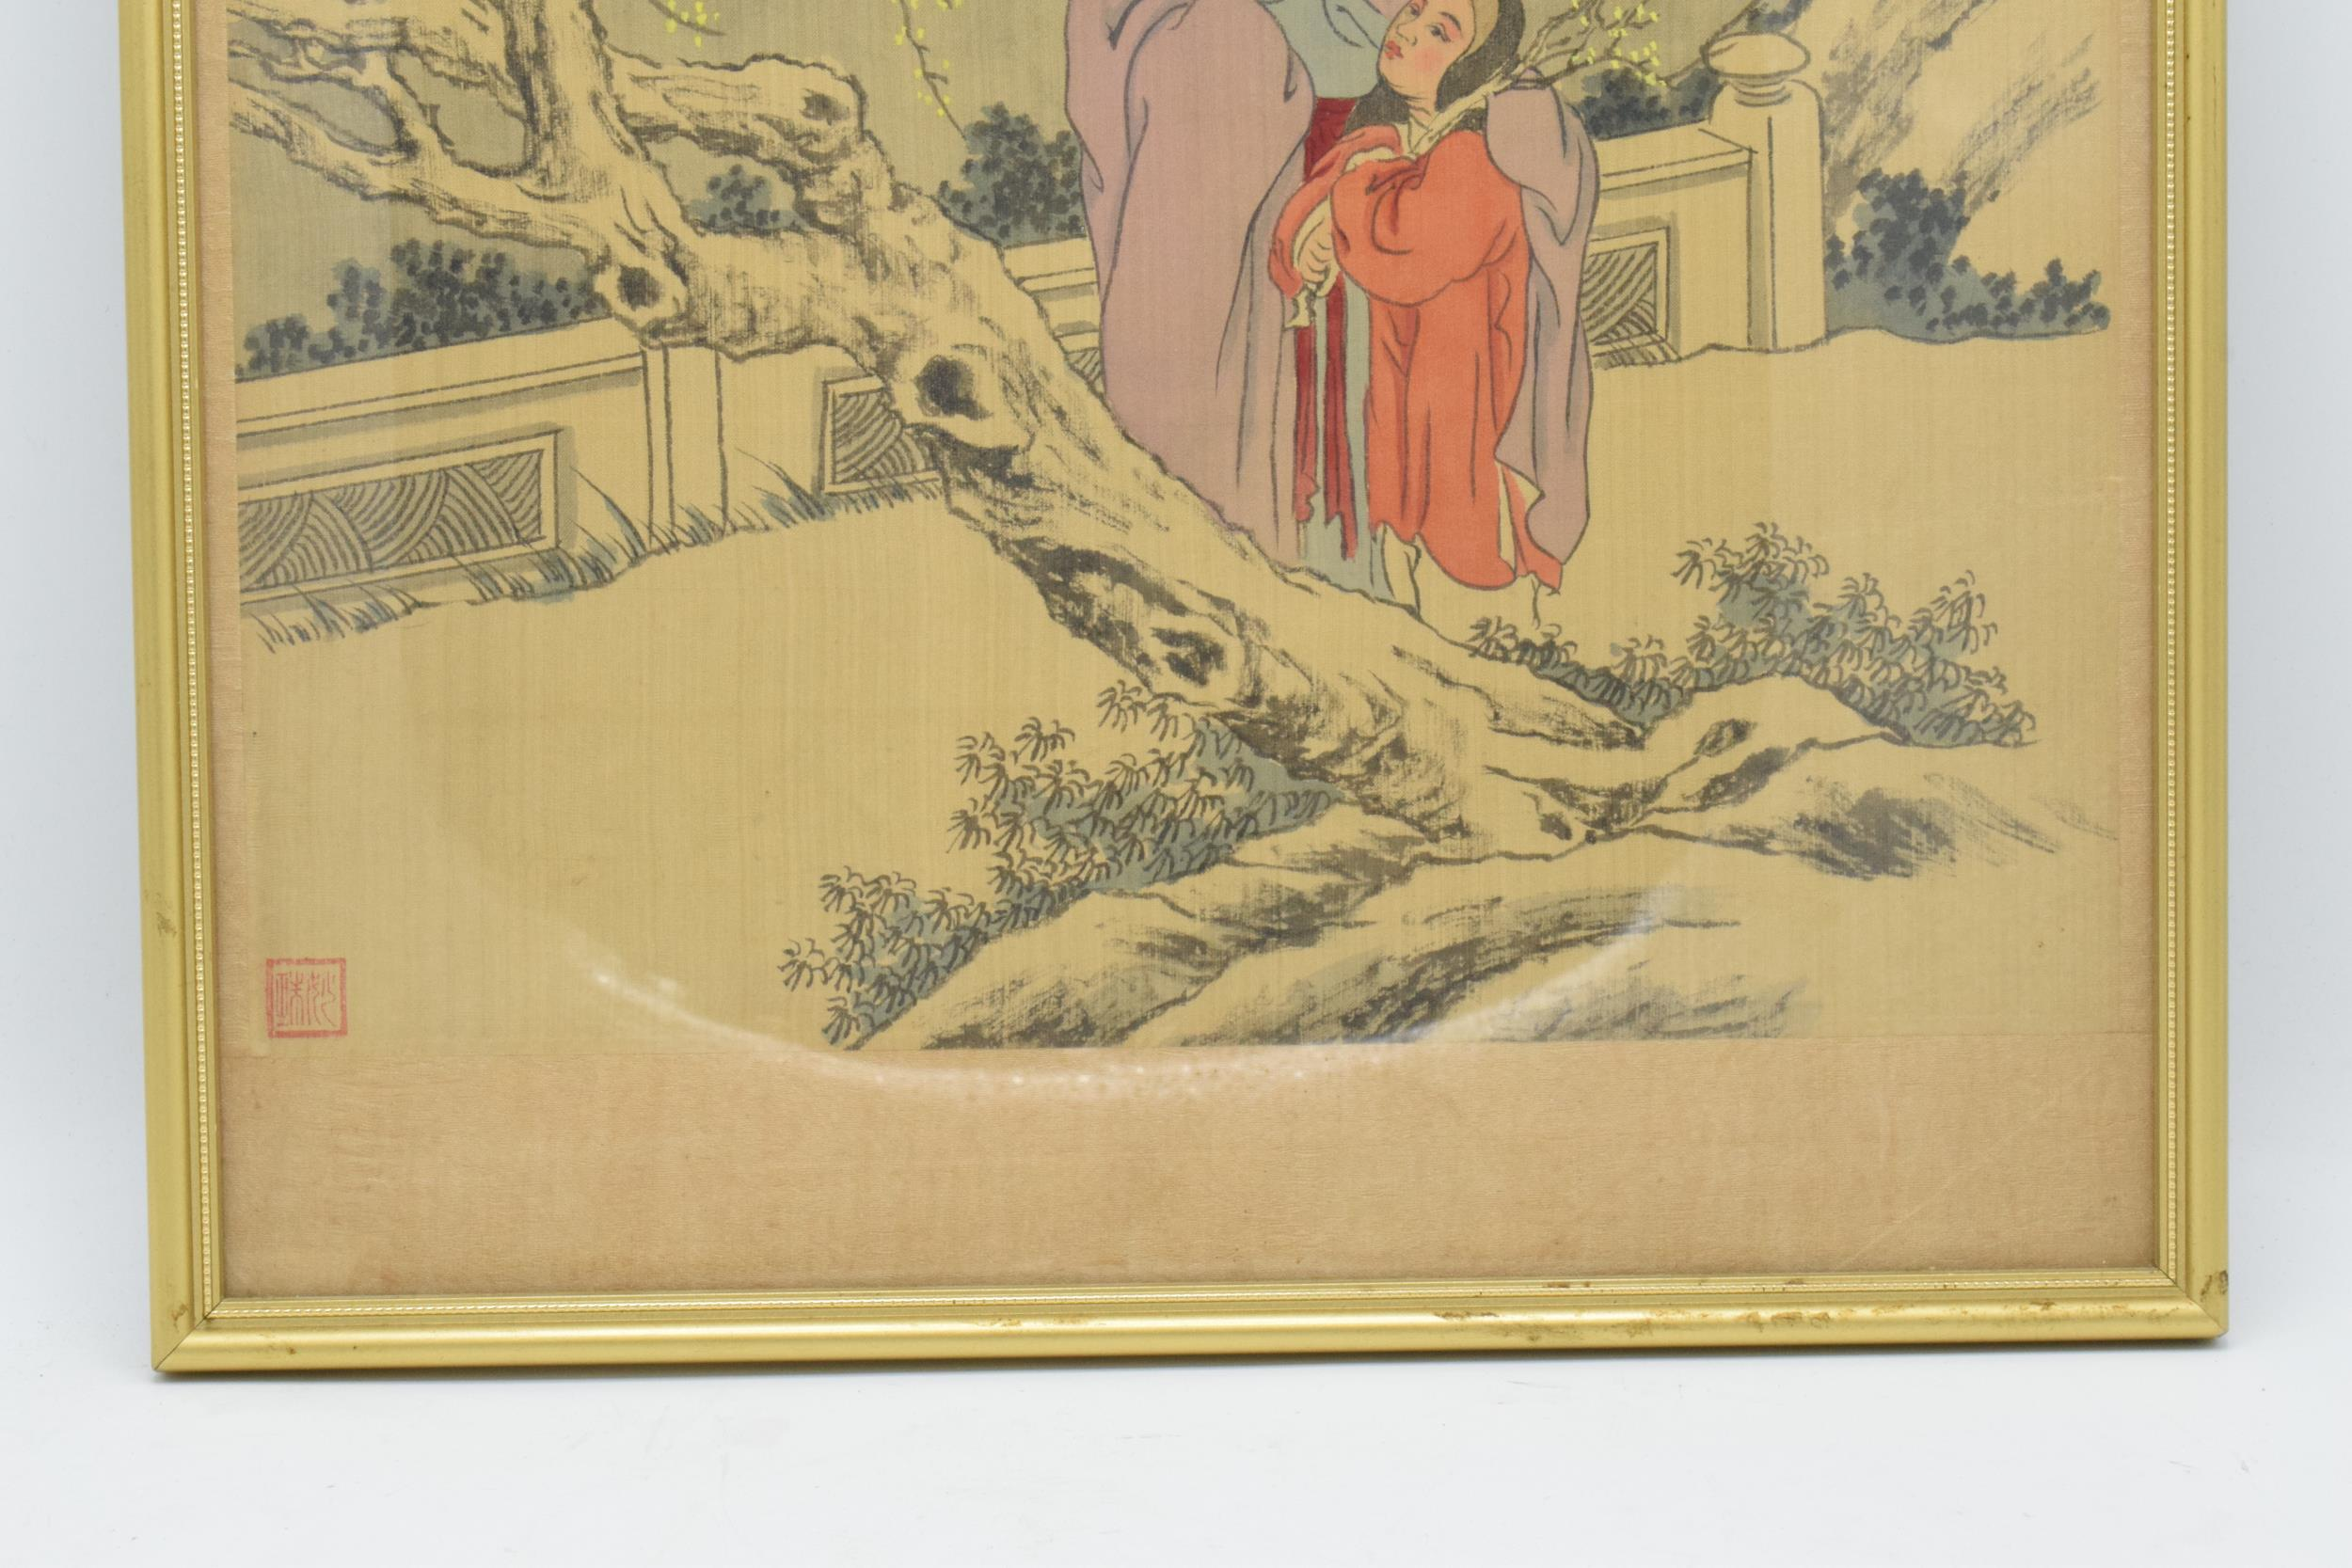 Meiji Japanese woodblock print depicting snowy mountain scene with man and young girl in front of - Image 2 of 6